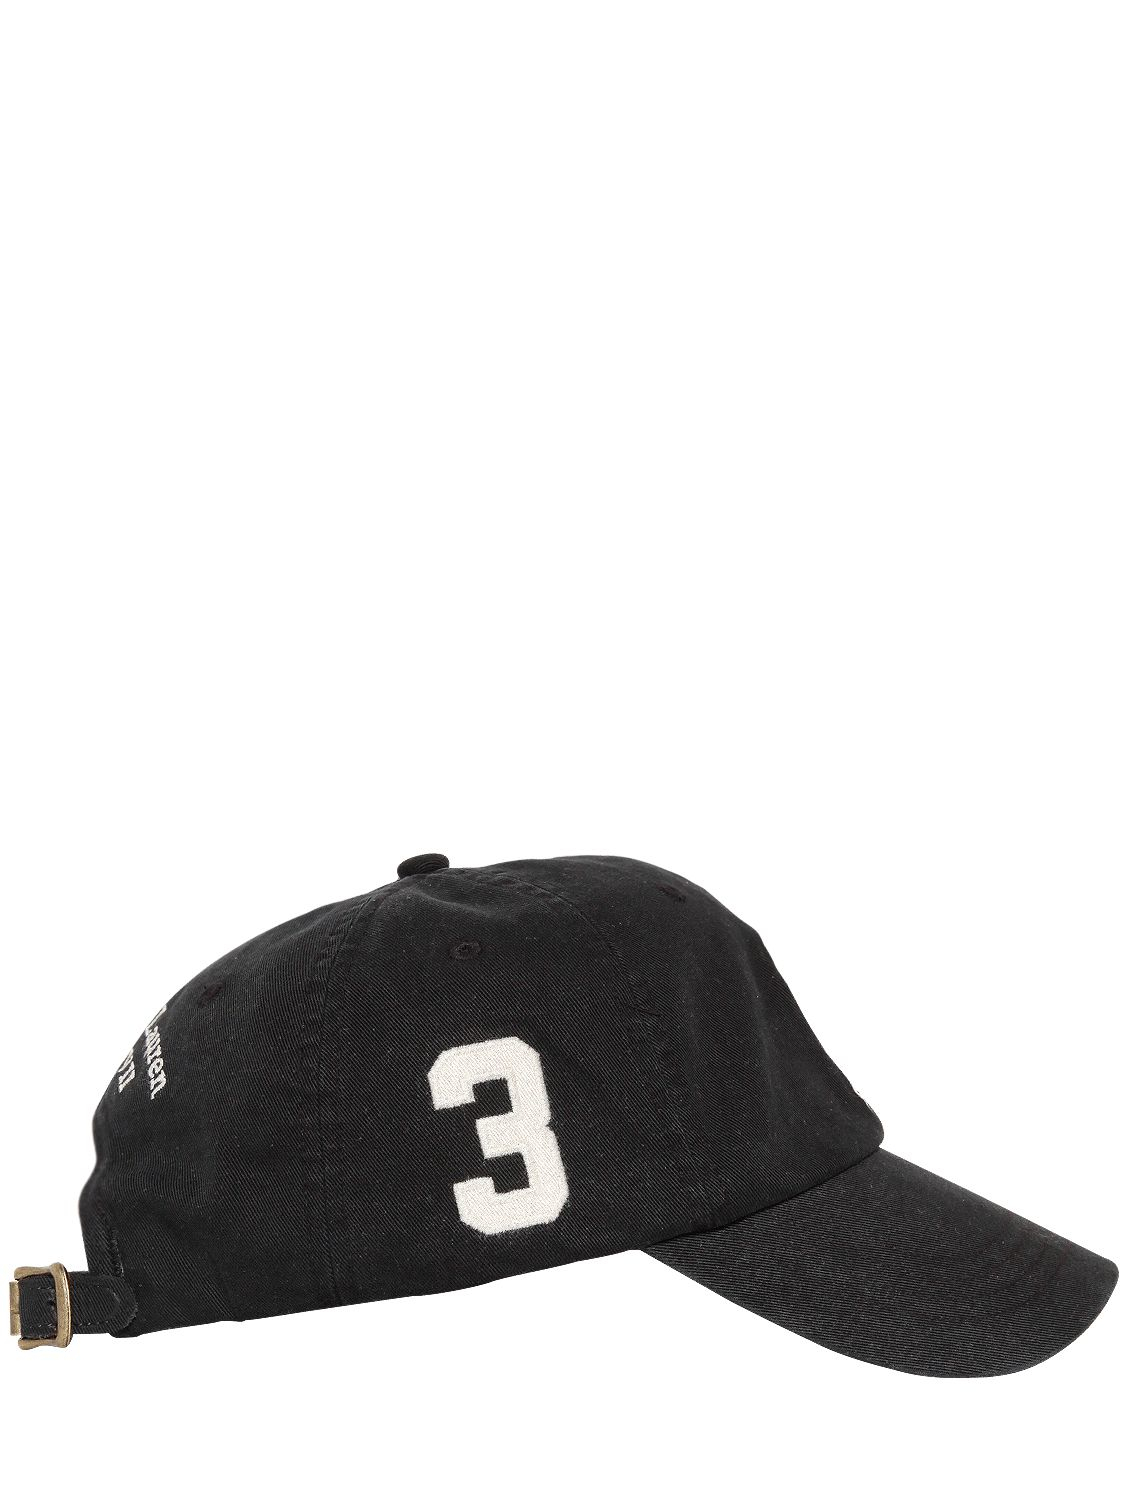 233b509c051 Polo Ralph Lauren Big Pony Cotton Canvas Baseball Hat in Black for ...